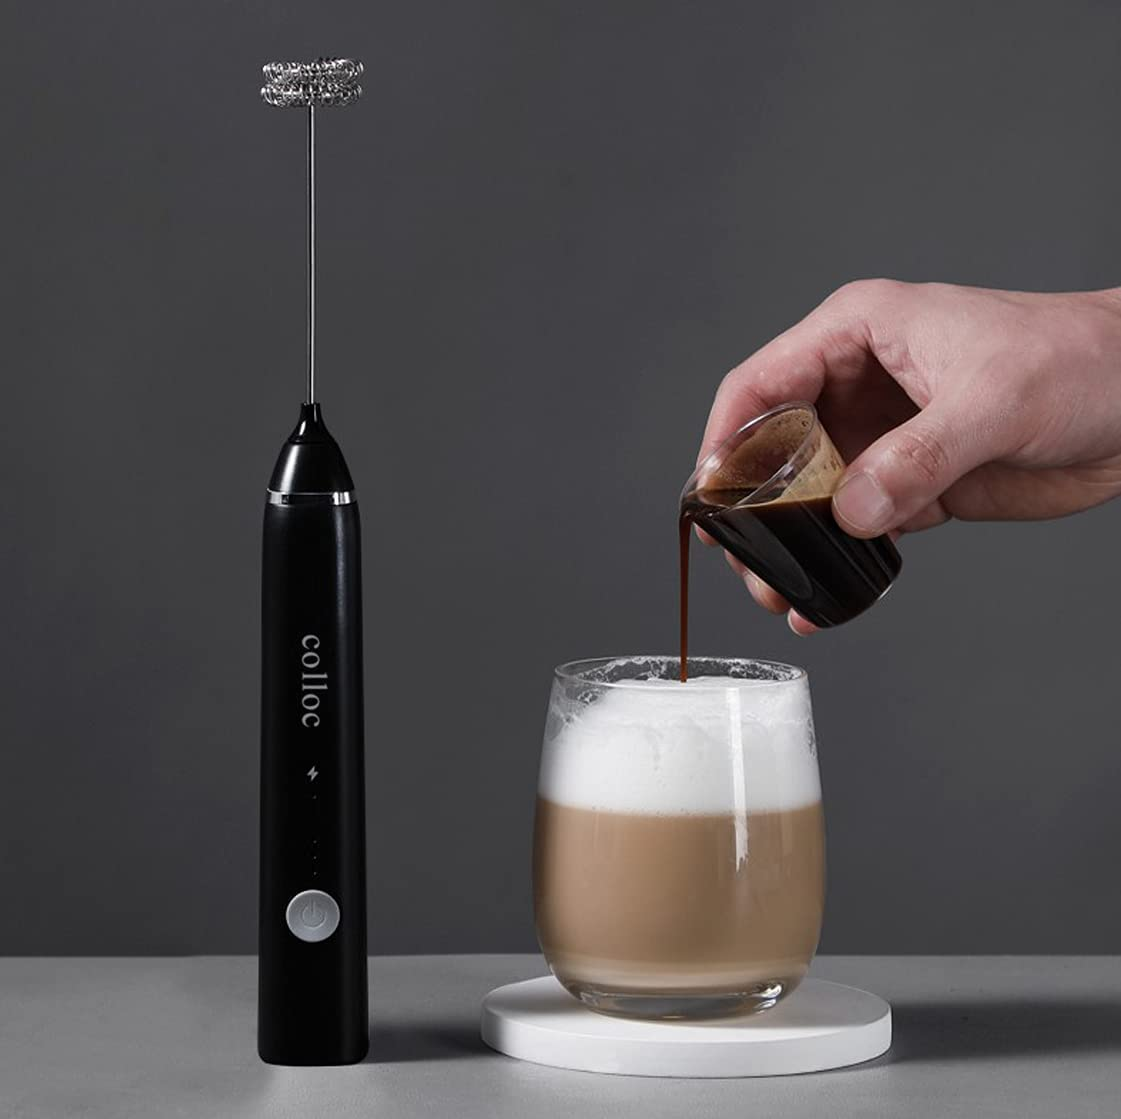 colloc Electric Milk Frother Coffee Super beauty product restock quality Attention brand top Household